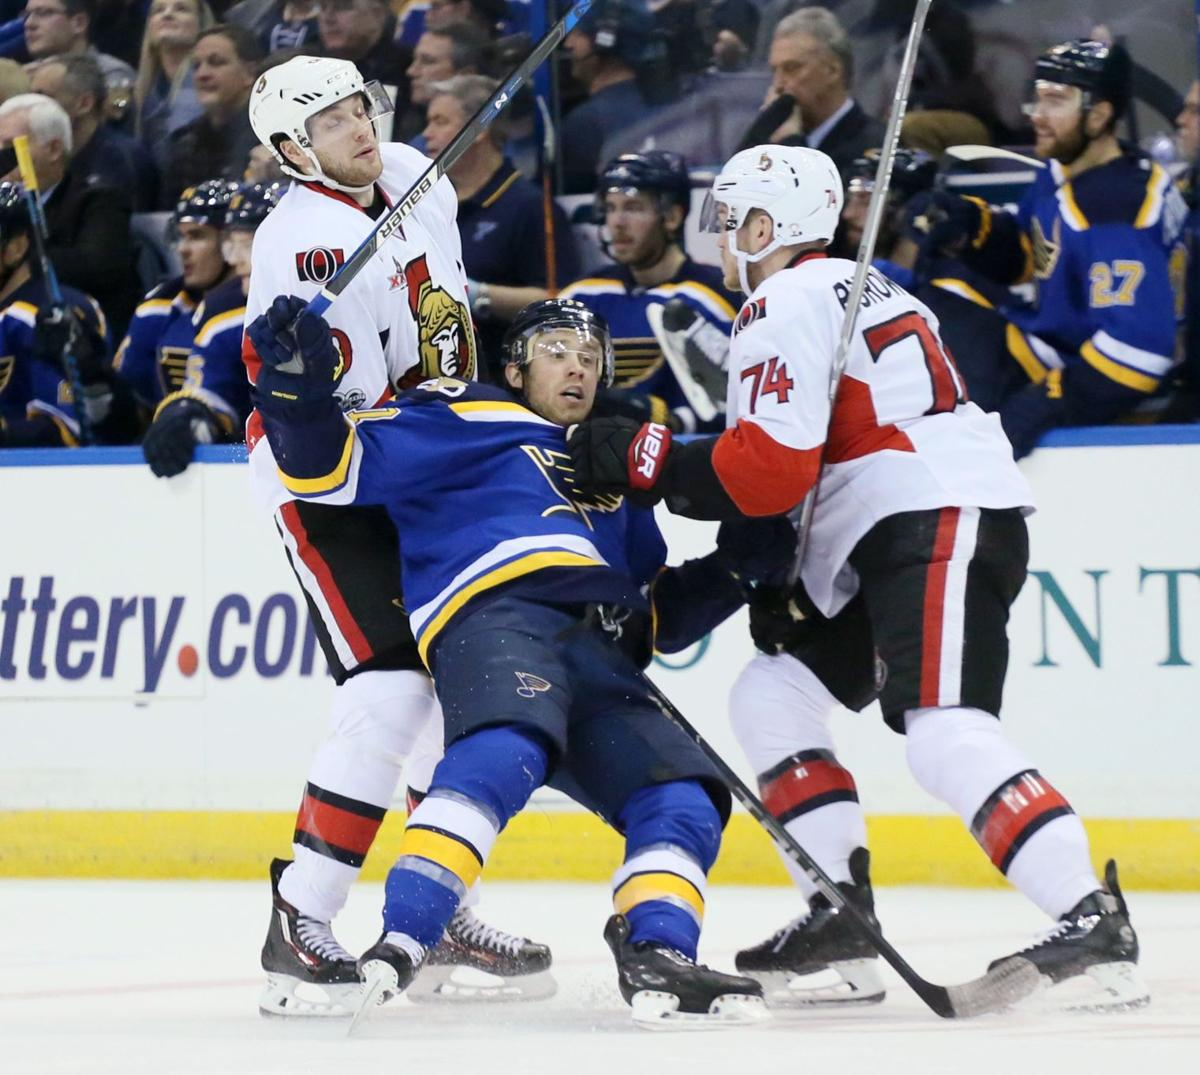 St. Louis Blues v Ottawa Senators